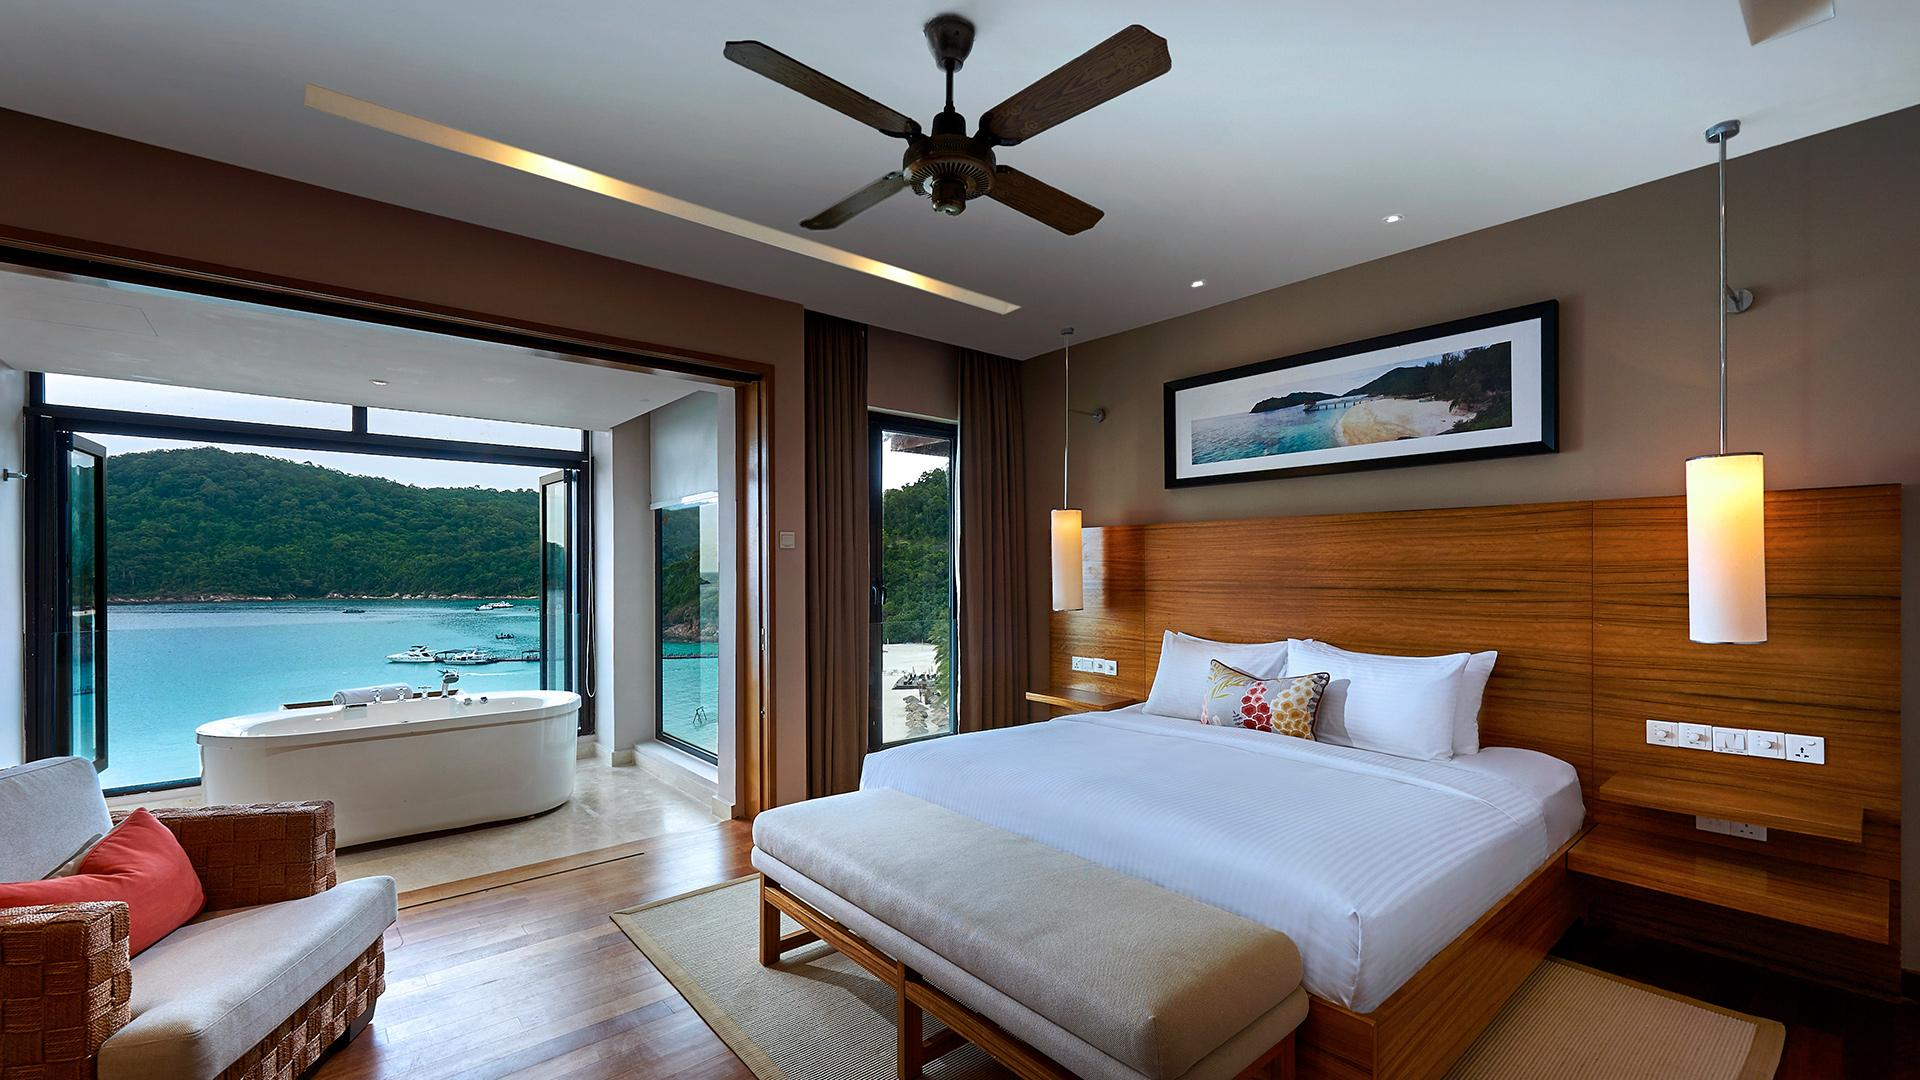 Cliff Bay Suite image 1 at The Taaras Beach & Spa Resort by null, Terengganu, Malaysia